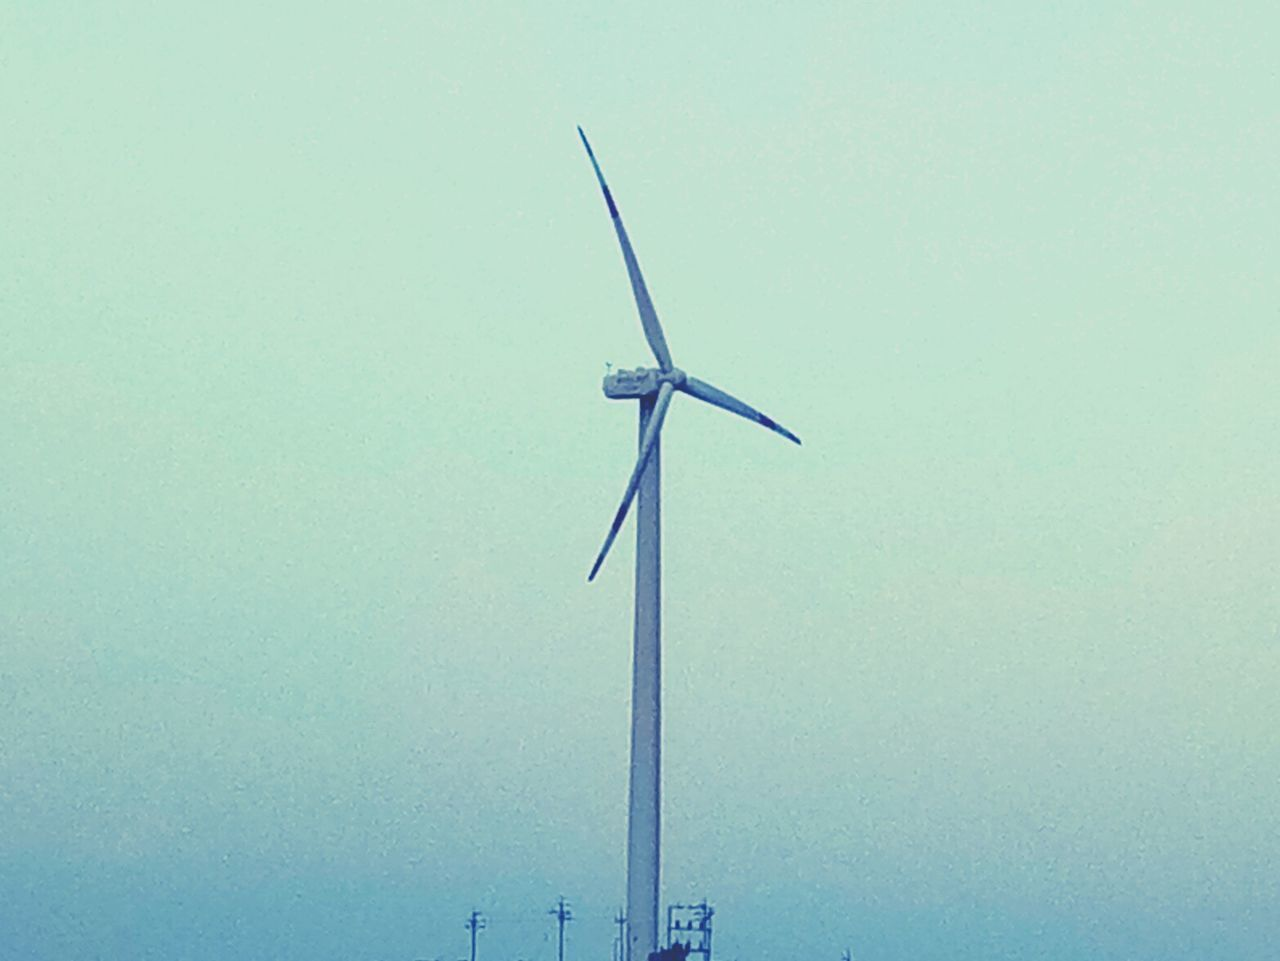 wind turbine, wind power, alternative energy, environmental conservation, renewable energy, low angle view, windmill, clear sky, industrial windmill, fuel and power generation, outdoors, day, no people, technology, nature, sky